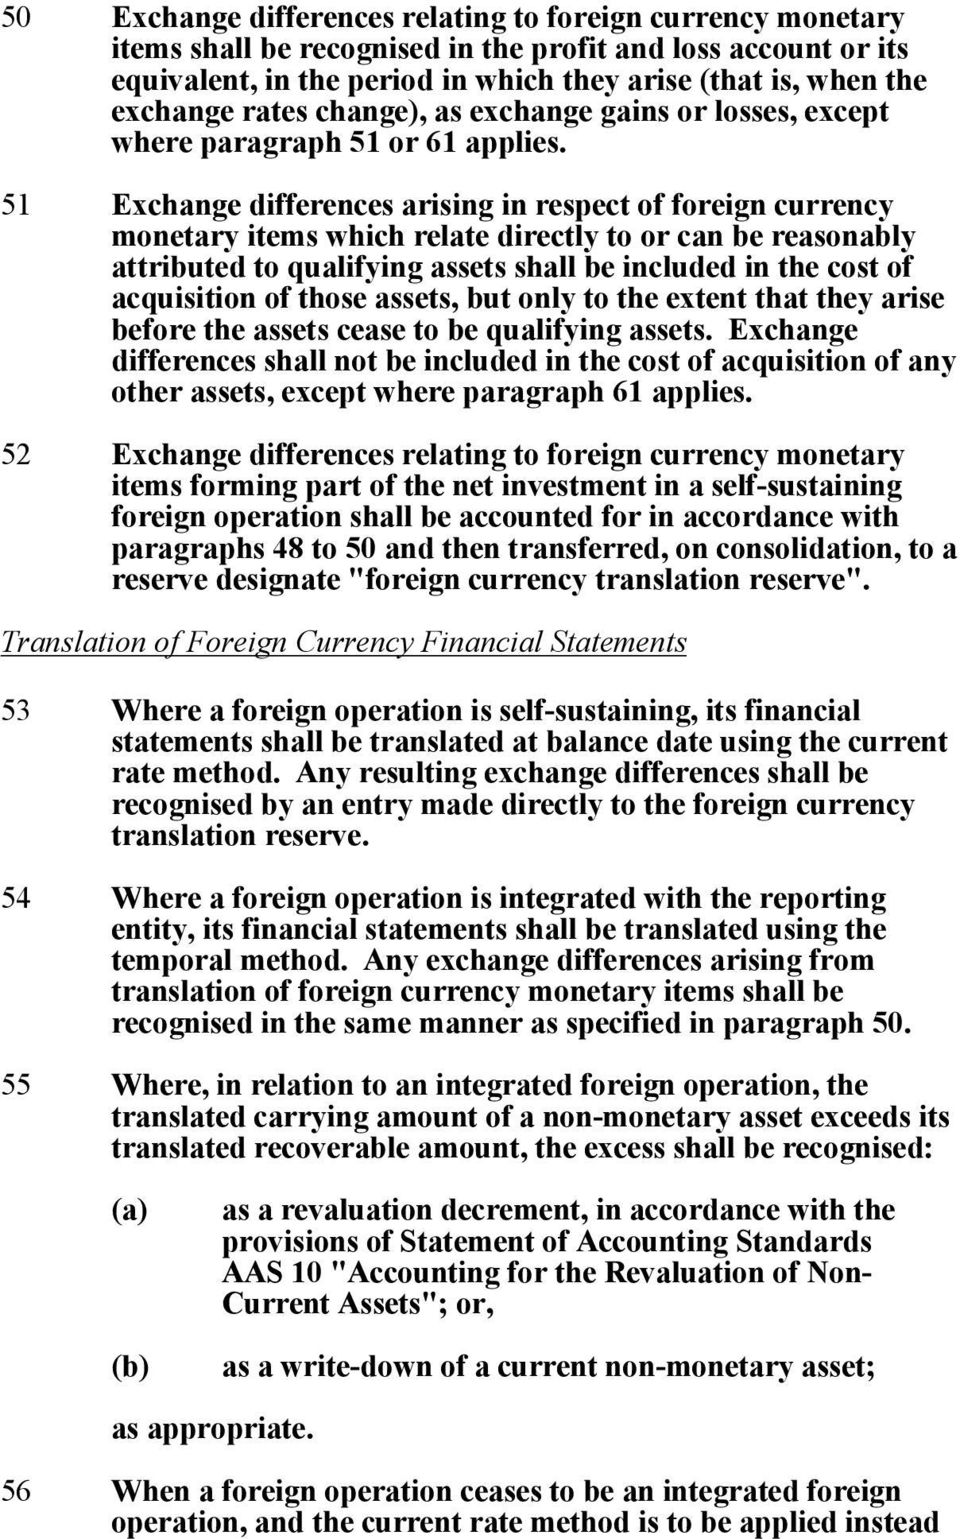 51 Exchange differences arising in respect of foreign currency monetary items which relate directly to or can be reasonably attributed to qualifying assets shall be included in the cost of